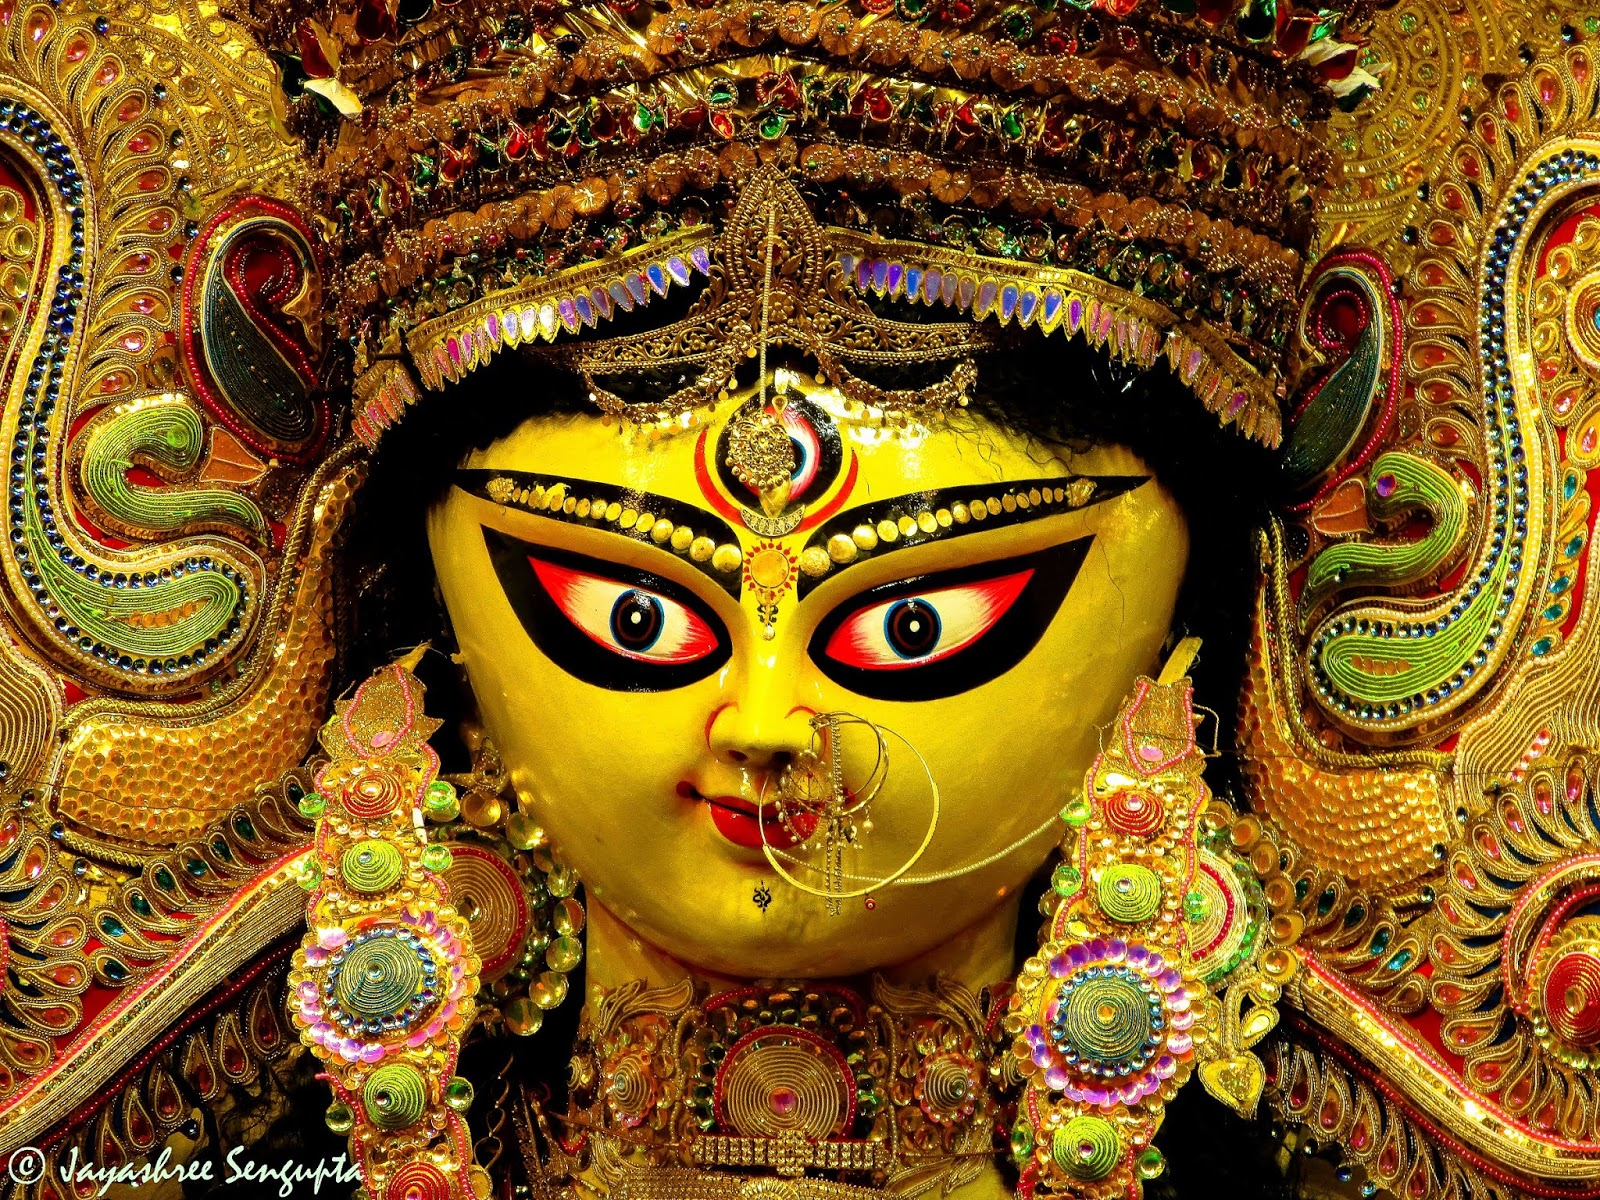 The Durga  idol of Maddox Square